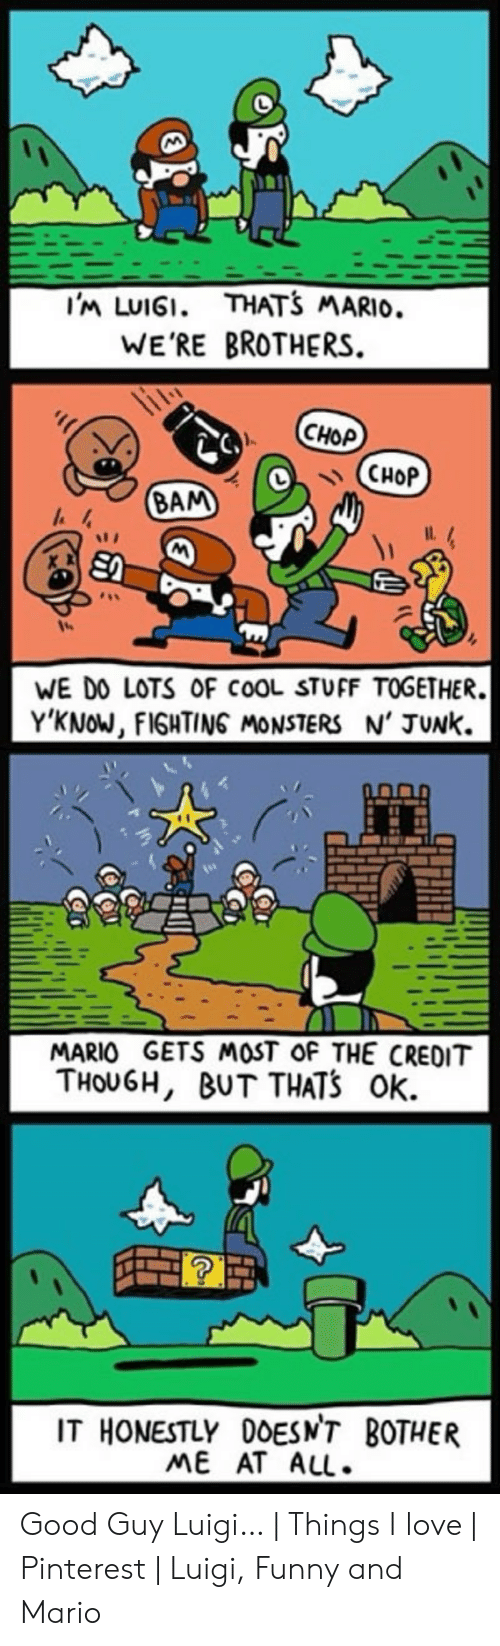 Funny Mario Memes: THATS MARIO.  I'm LUIGI.  WE'RE BROTHERS  CНОР  CHOP  BAM  WE DO LOTS OF COOL STUFF TOGETHER.  Y'KNOW, FIGHTING MONSTERS N' JUNK  MARIO GETS MOST OF THE CREDIT  THOUGH, BUT THATS Ok  IT HONESTLY 0OESN'T BOTHER  ME AT ALL. Good Guy Luigi…   Things I love   Pinterest   Luigi, Funny and Mario